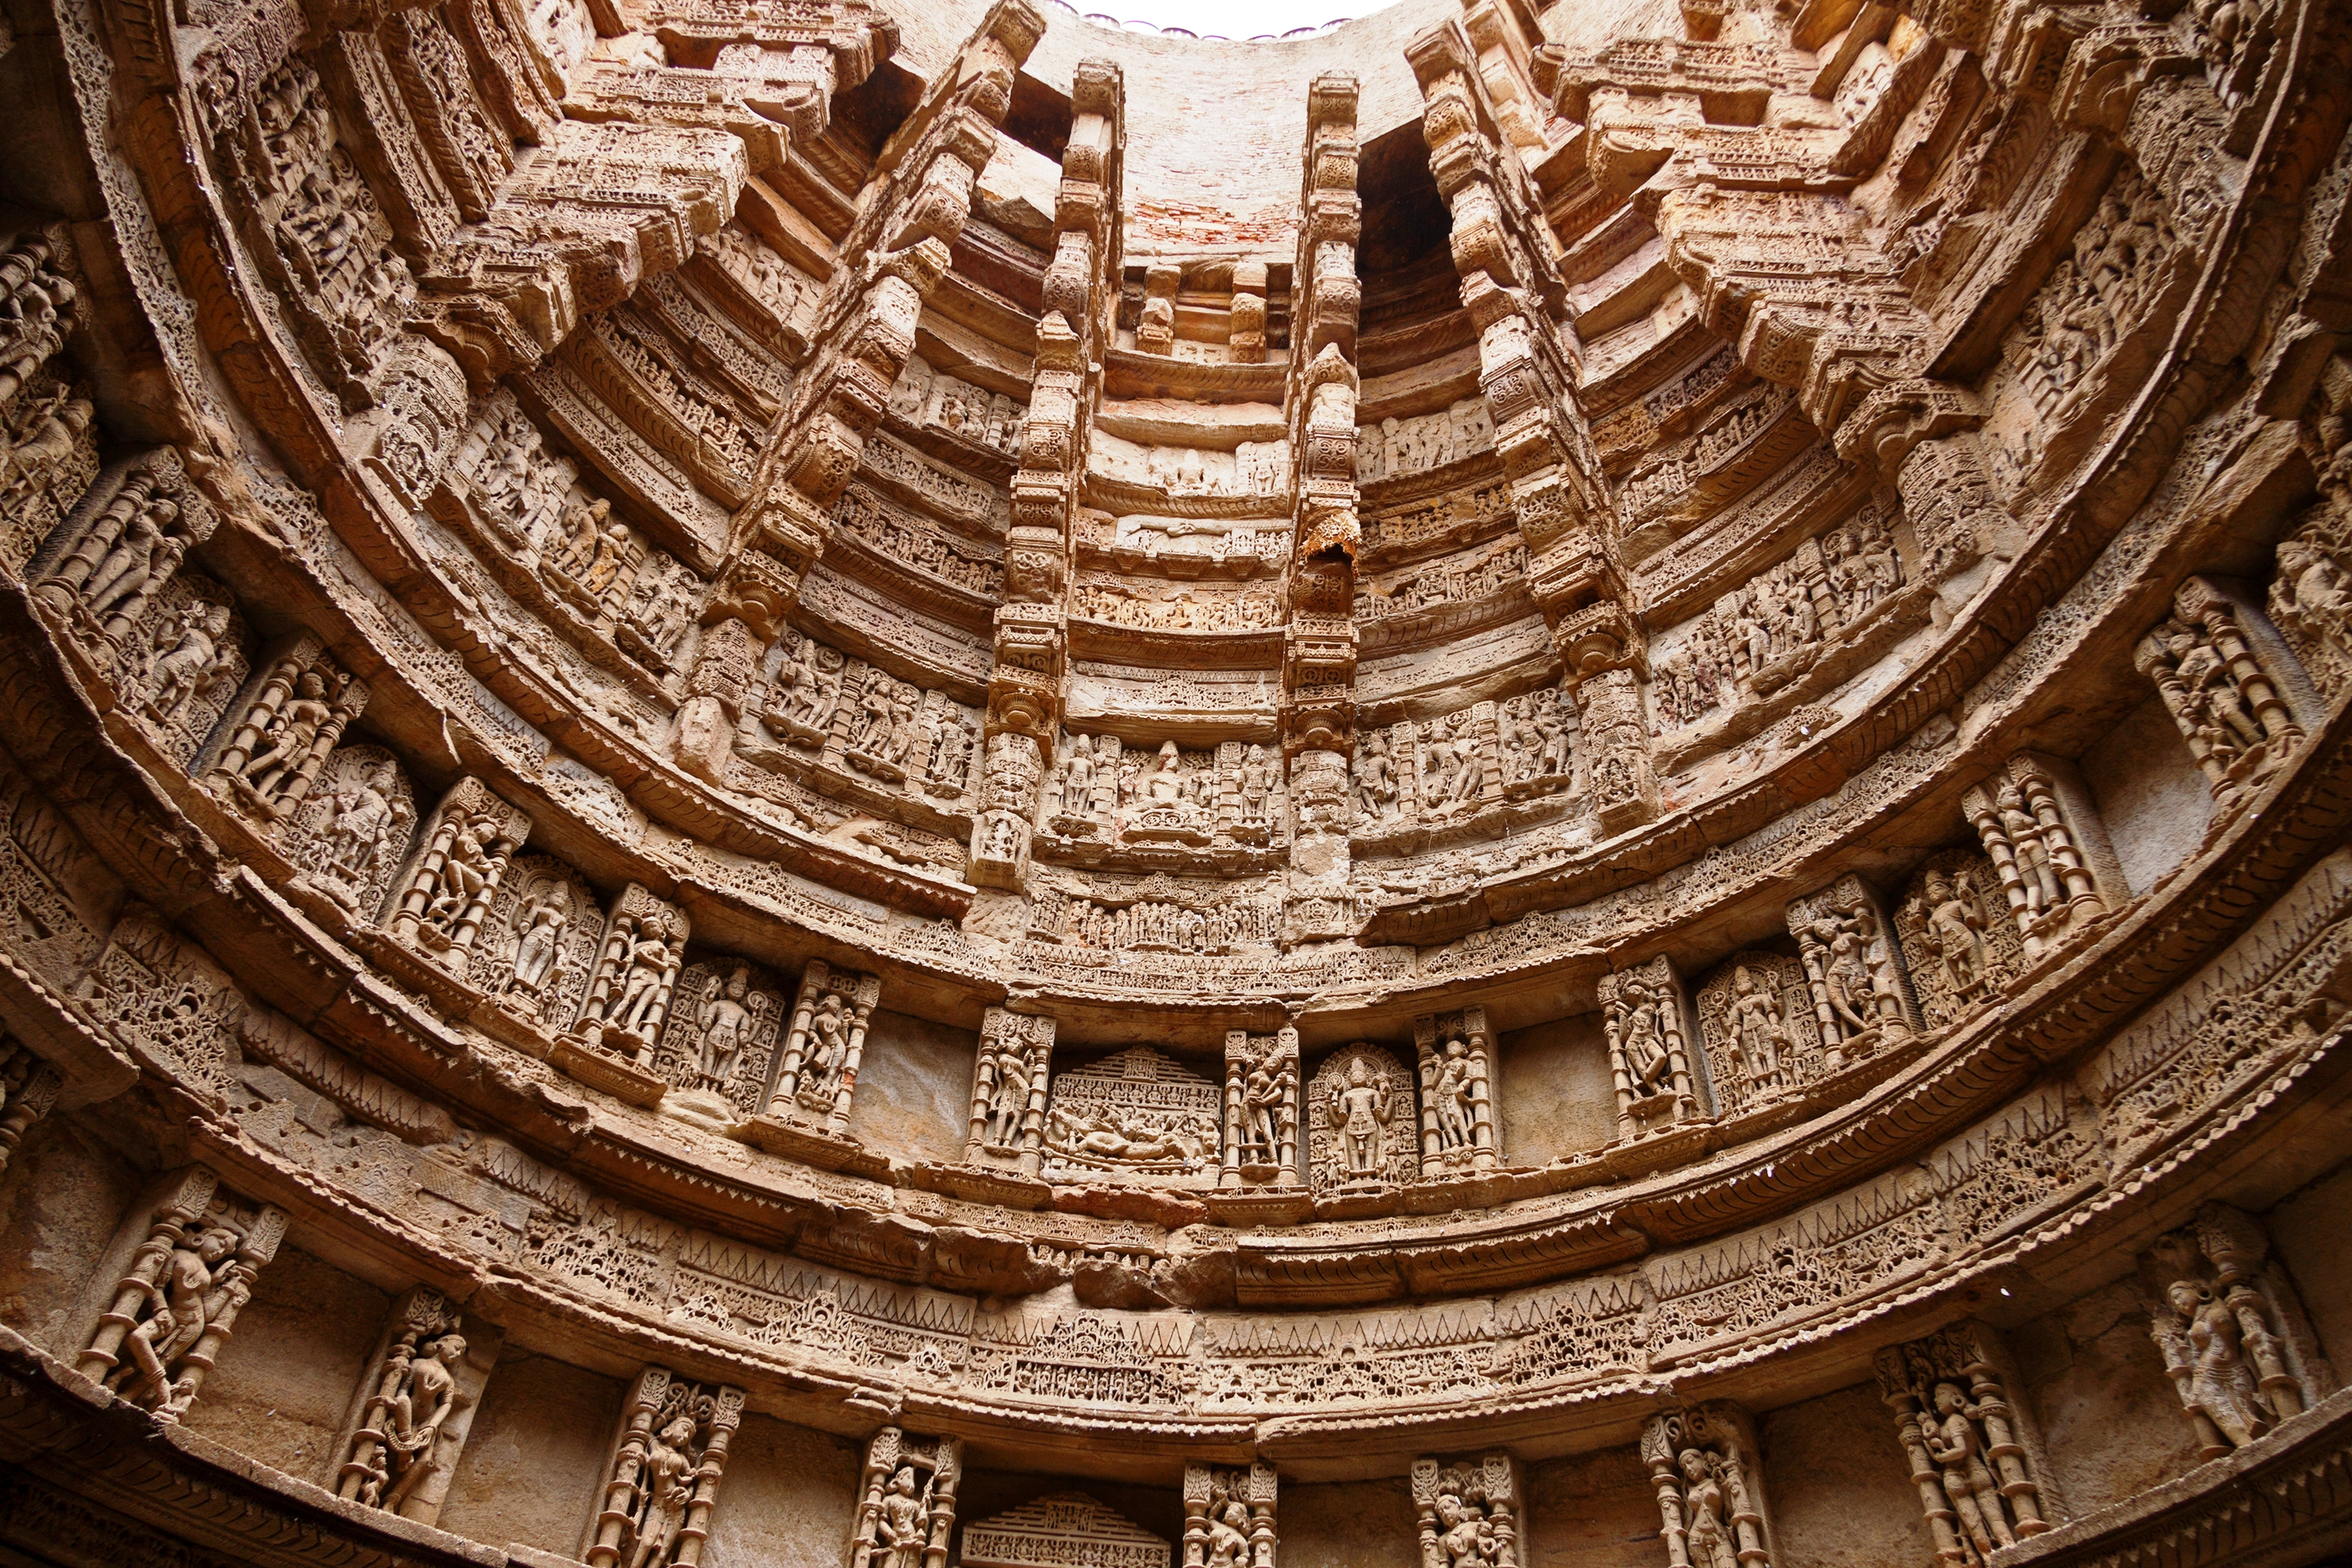 rani ki vav step well - world heritage sites in india